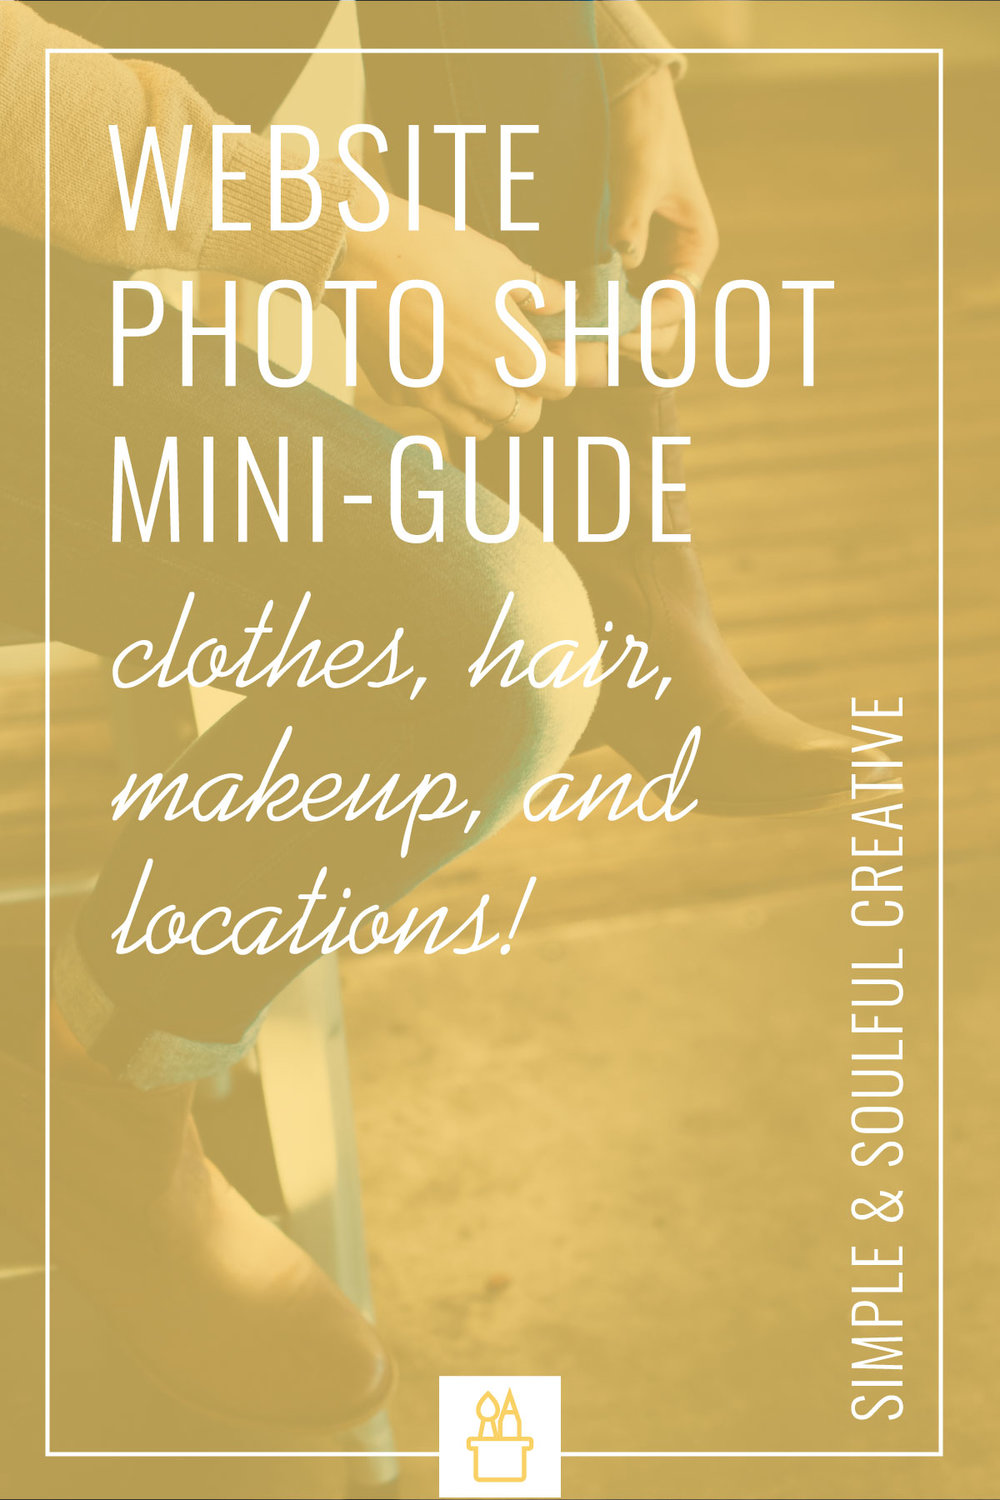 A mini-guide to help you prepare for your website photoshoot. Learn what to wear, how to do your makeup, what lighting to use, how to orient the shots, and more!